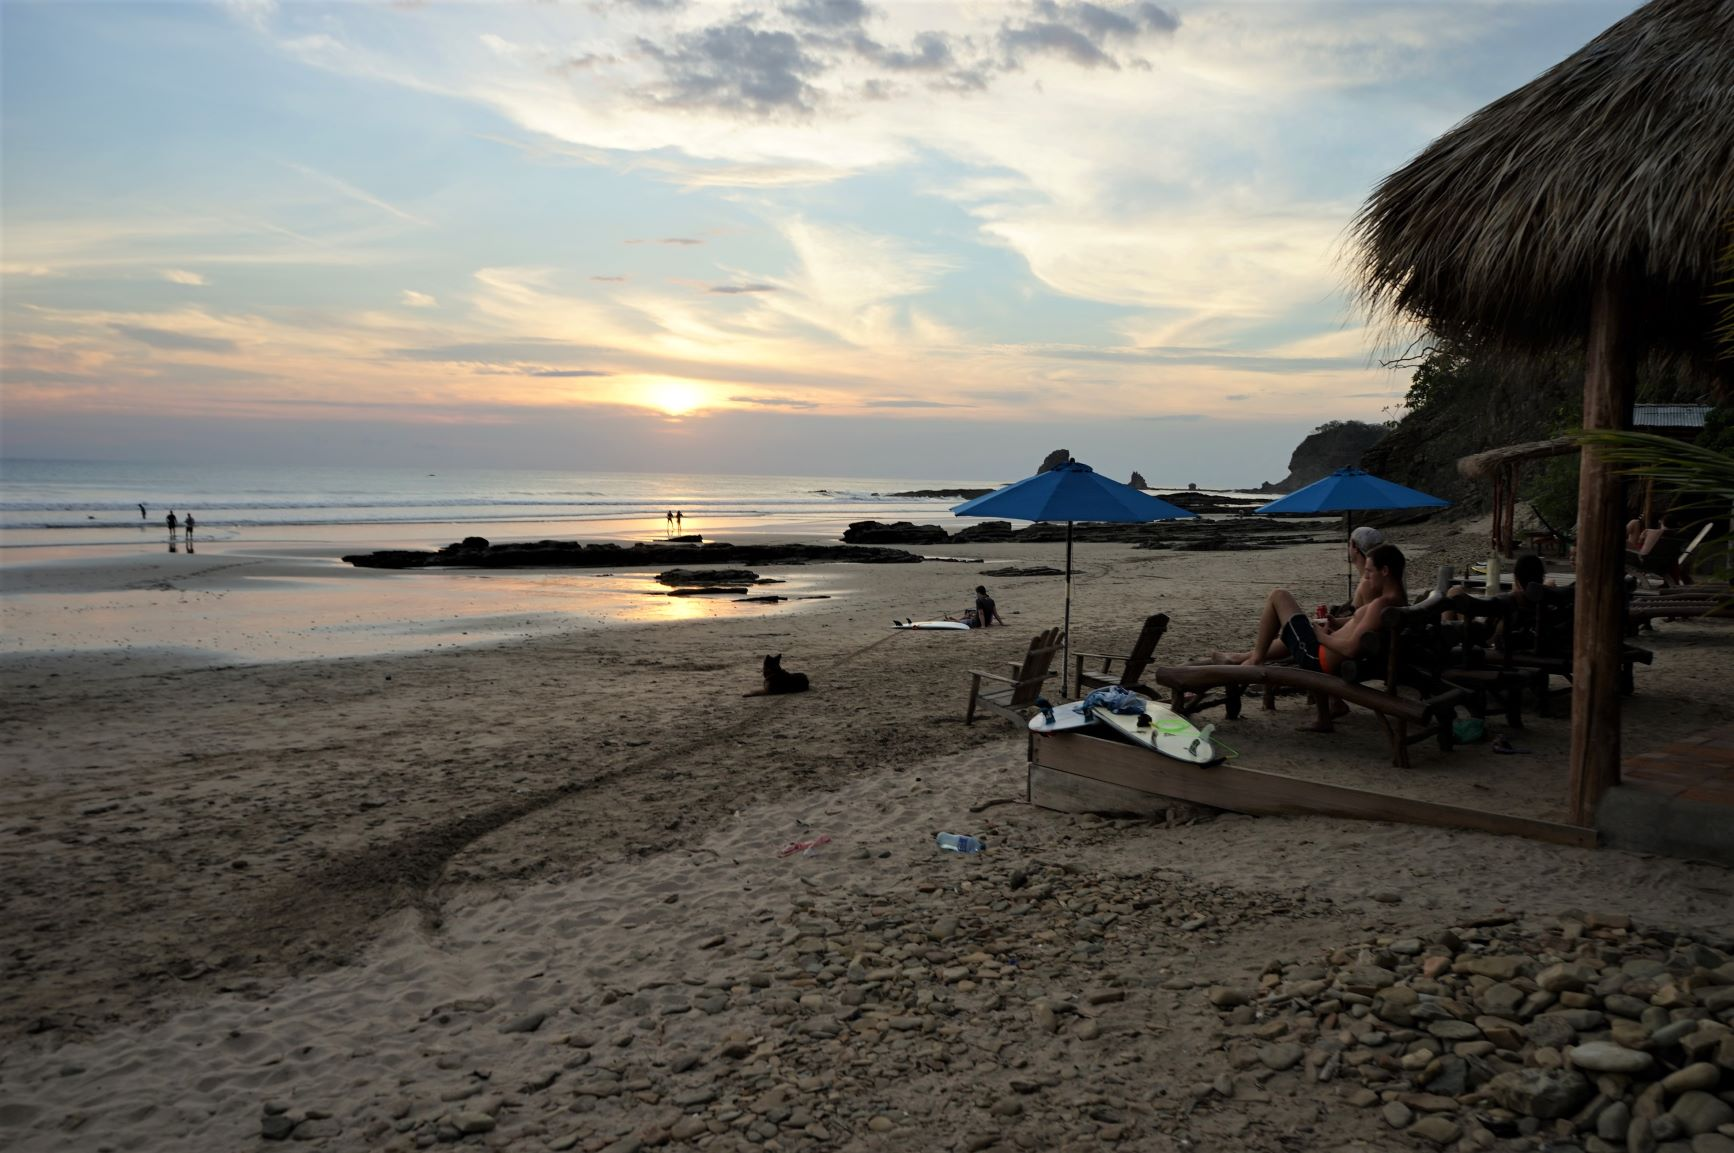 Playa Maderas Nicaragua (30 Days Surfing in Paradise)